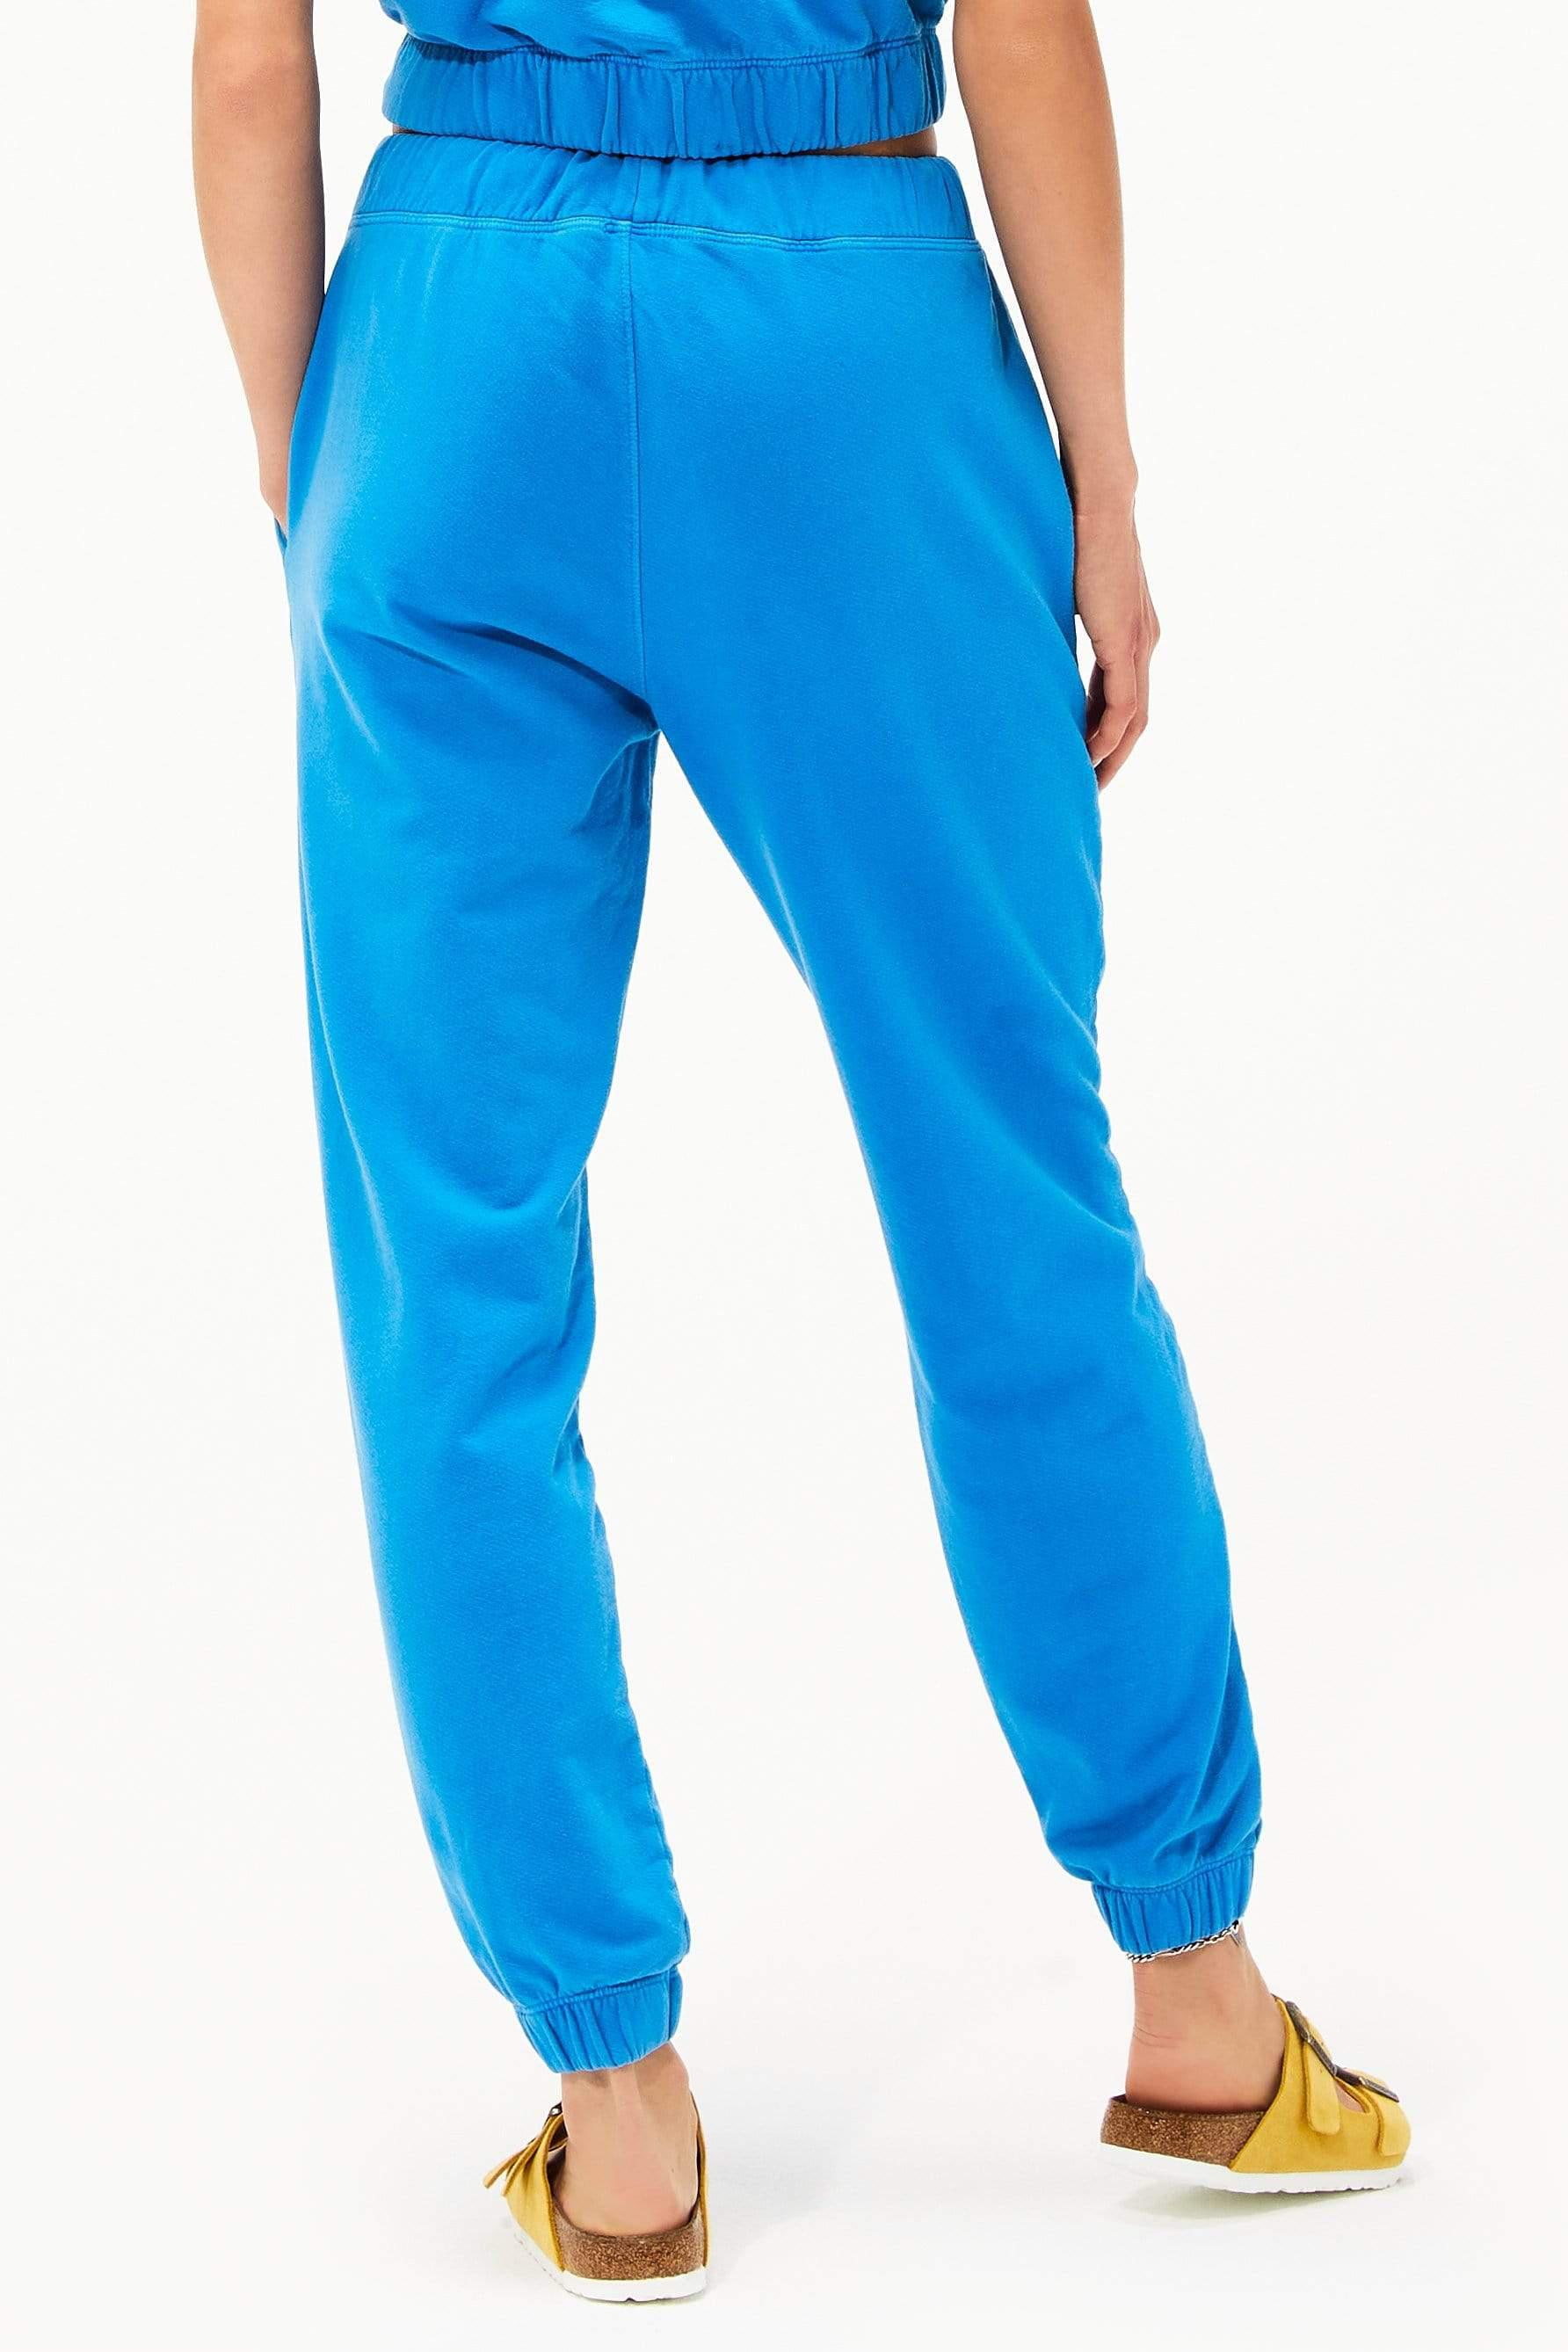 Franky French Terry 7/8 Sweatpant - Persian Blue 1